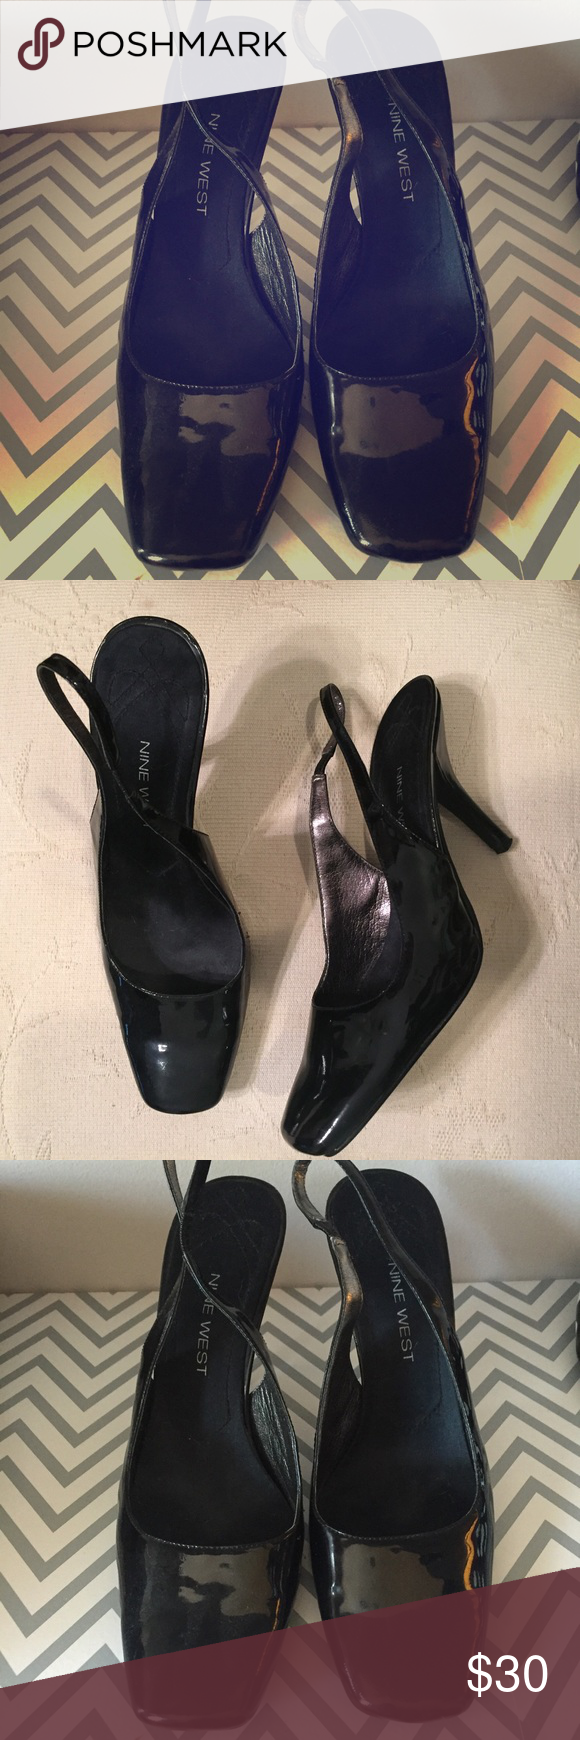 Nine West Black Patent Leather Slingback Pumps Black patent leather slingback pumps. Perfect for the working gal or parties! Nine West Shoes Heels